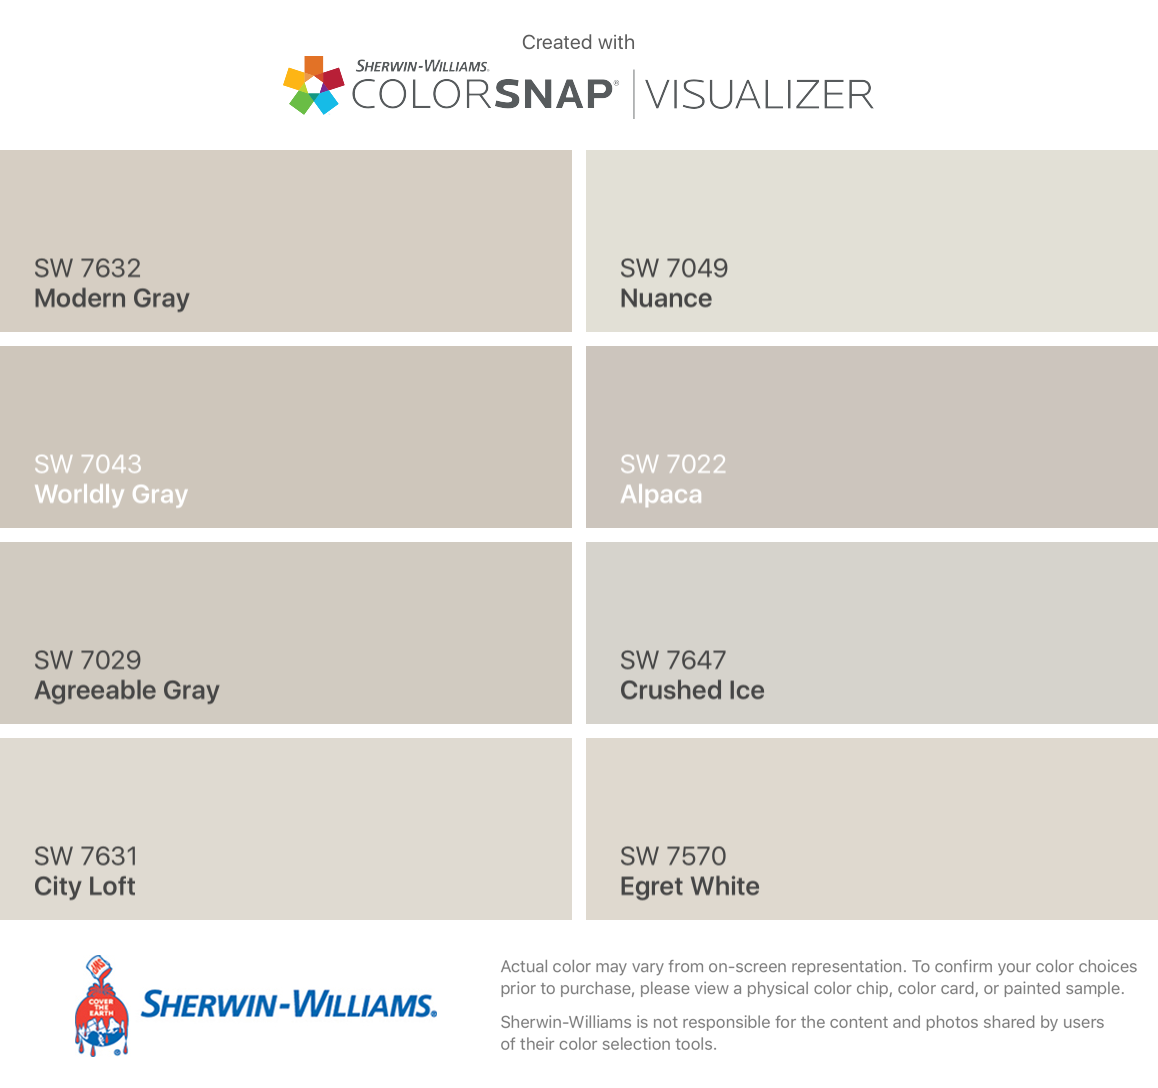 I found these colors with ColorSnap® Visualizer for iPhone by Sherwin-Williams: Modern Gray (SW 7632), Worldly Gray (SW 7043), Agreeable Gray (SW 7029), City Loft (SW 7631), Nuance (SW 7049), Alpaca (SW 7022), Crushed Ice (SW 7647), Egret White (SW 7570). #cityloftsherwinwilliams